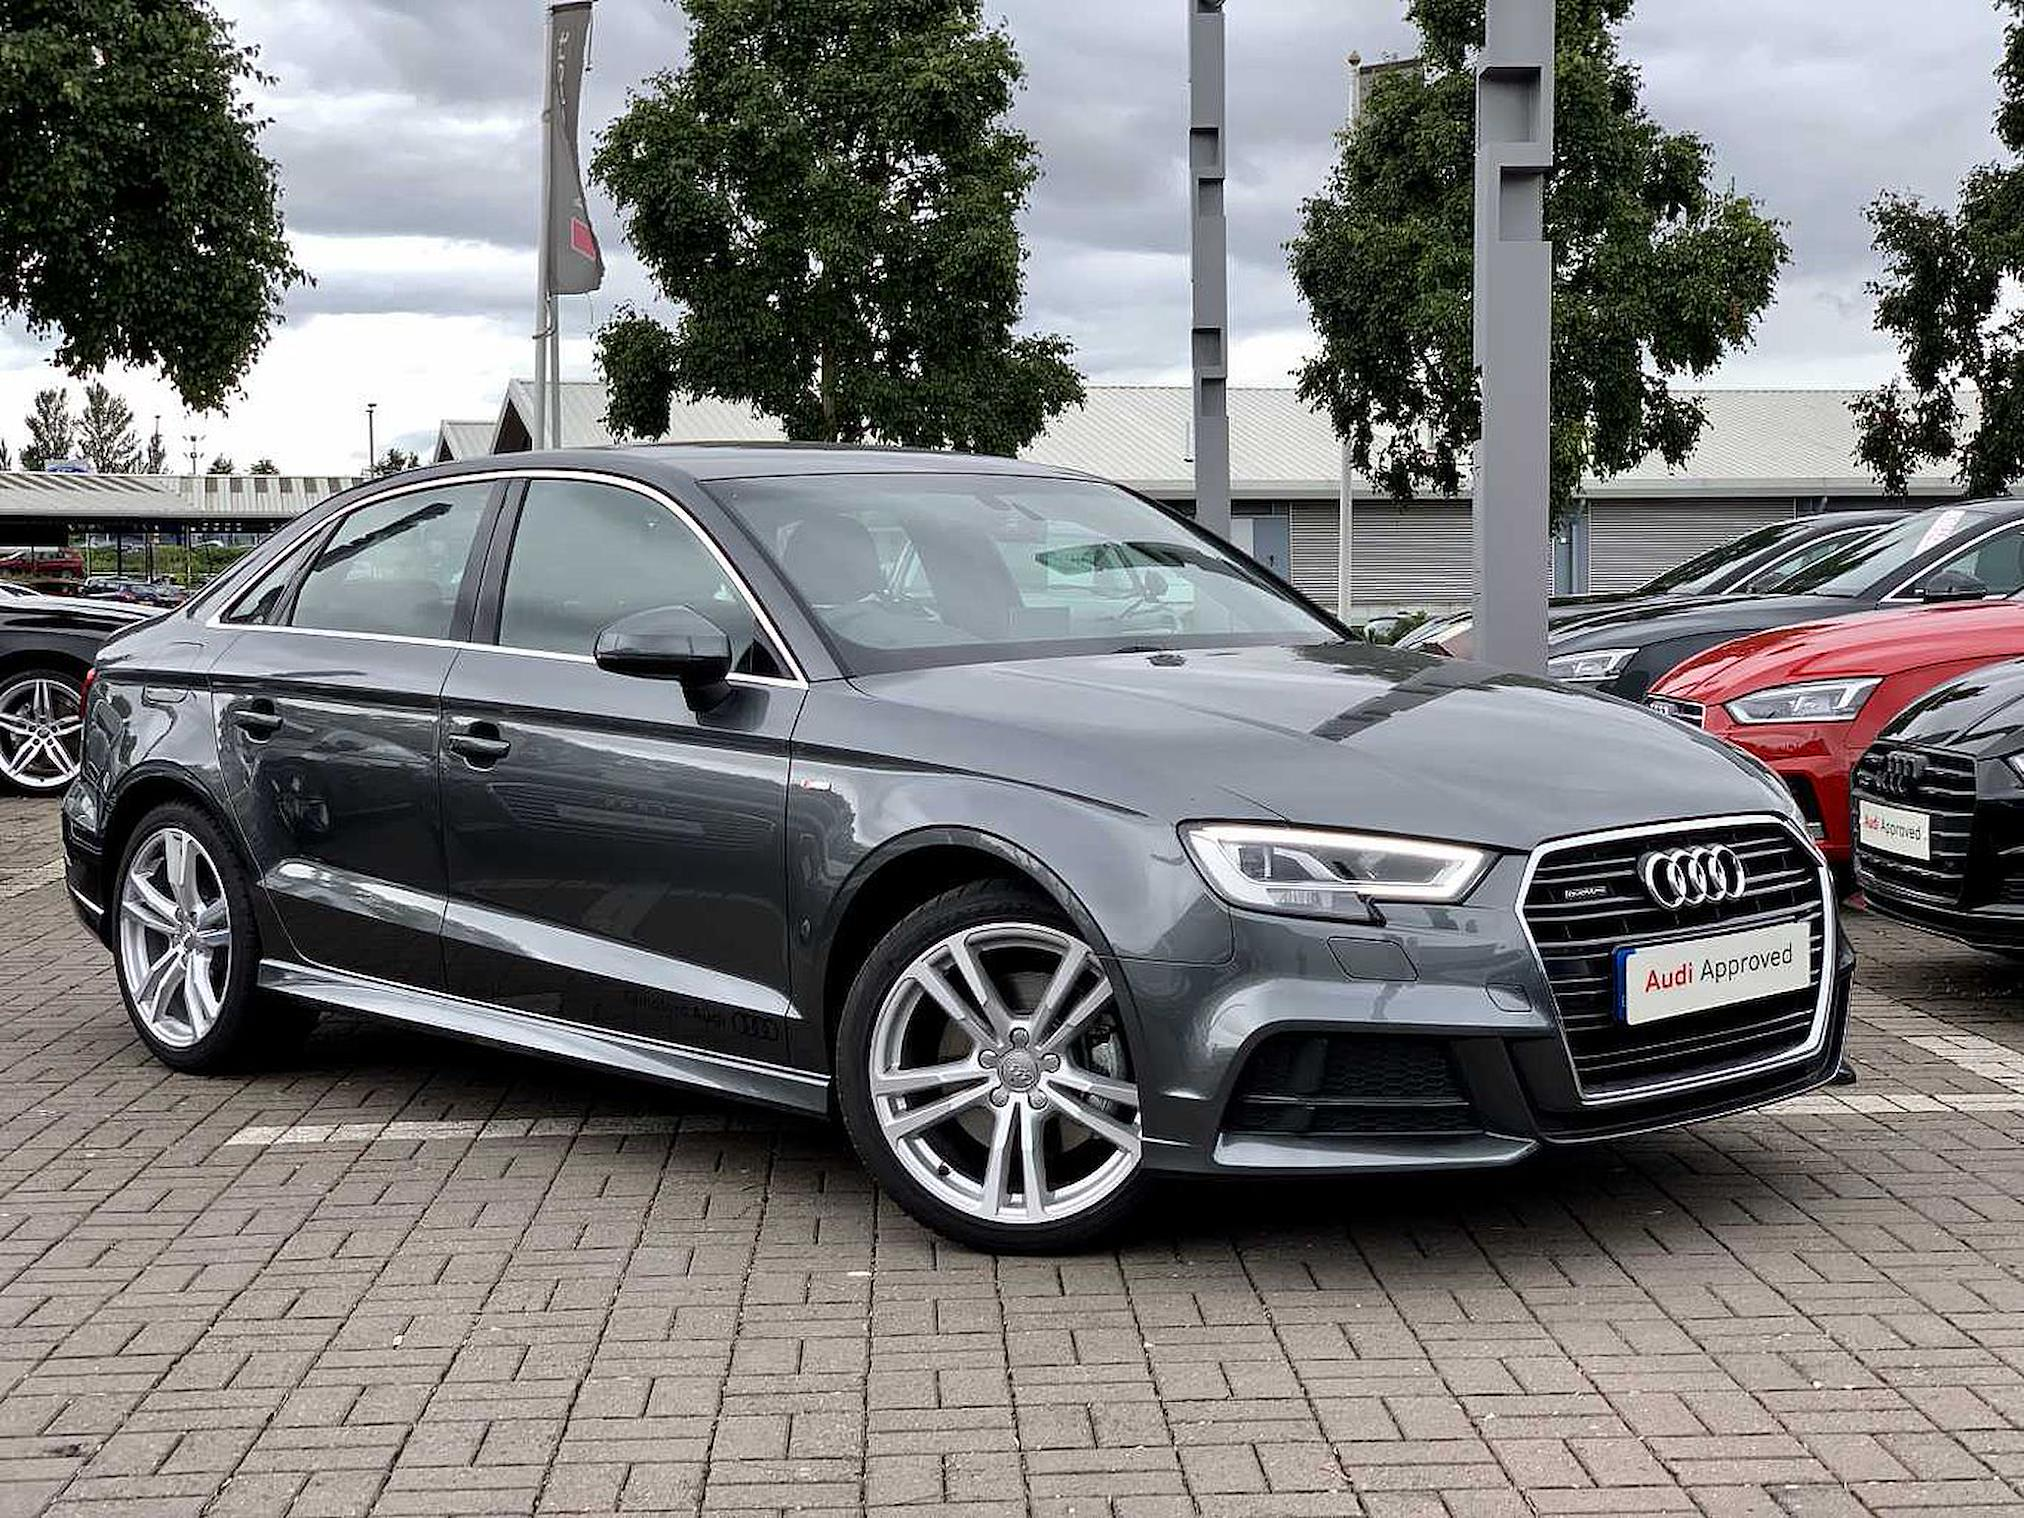 Nearly New A3 Audi S Line 40 Tfsi Quattro 190 Ps S Tronic 2019 Lookers